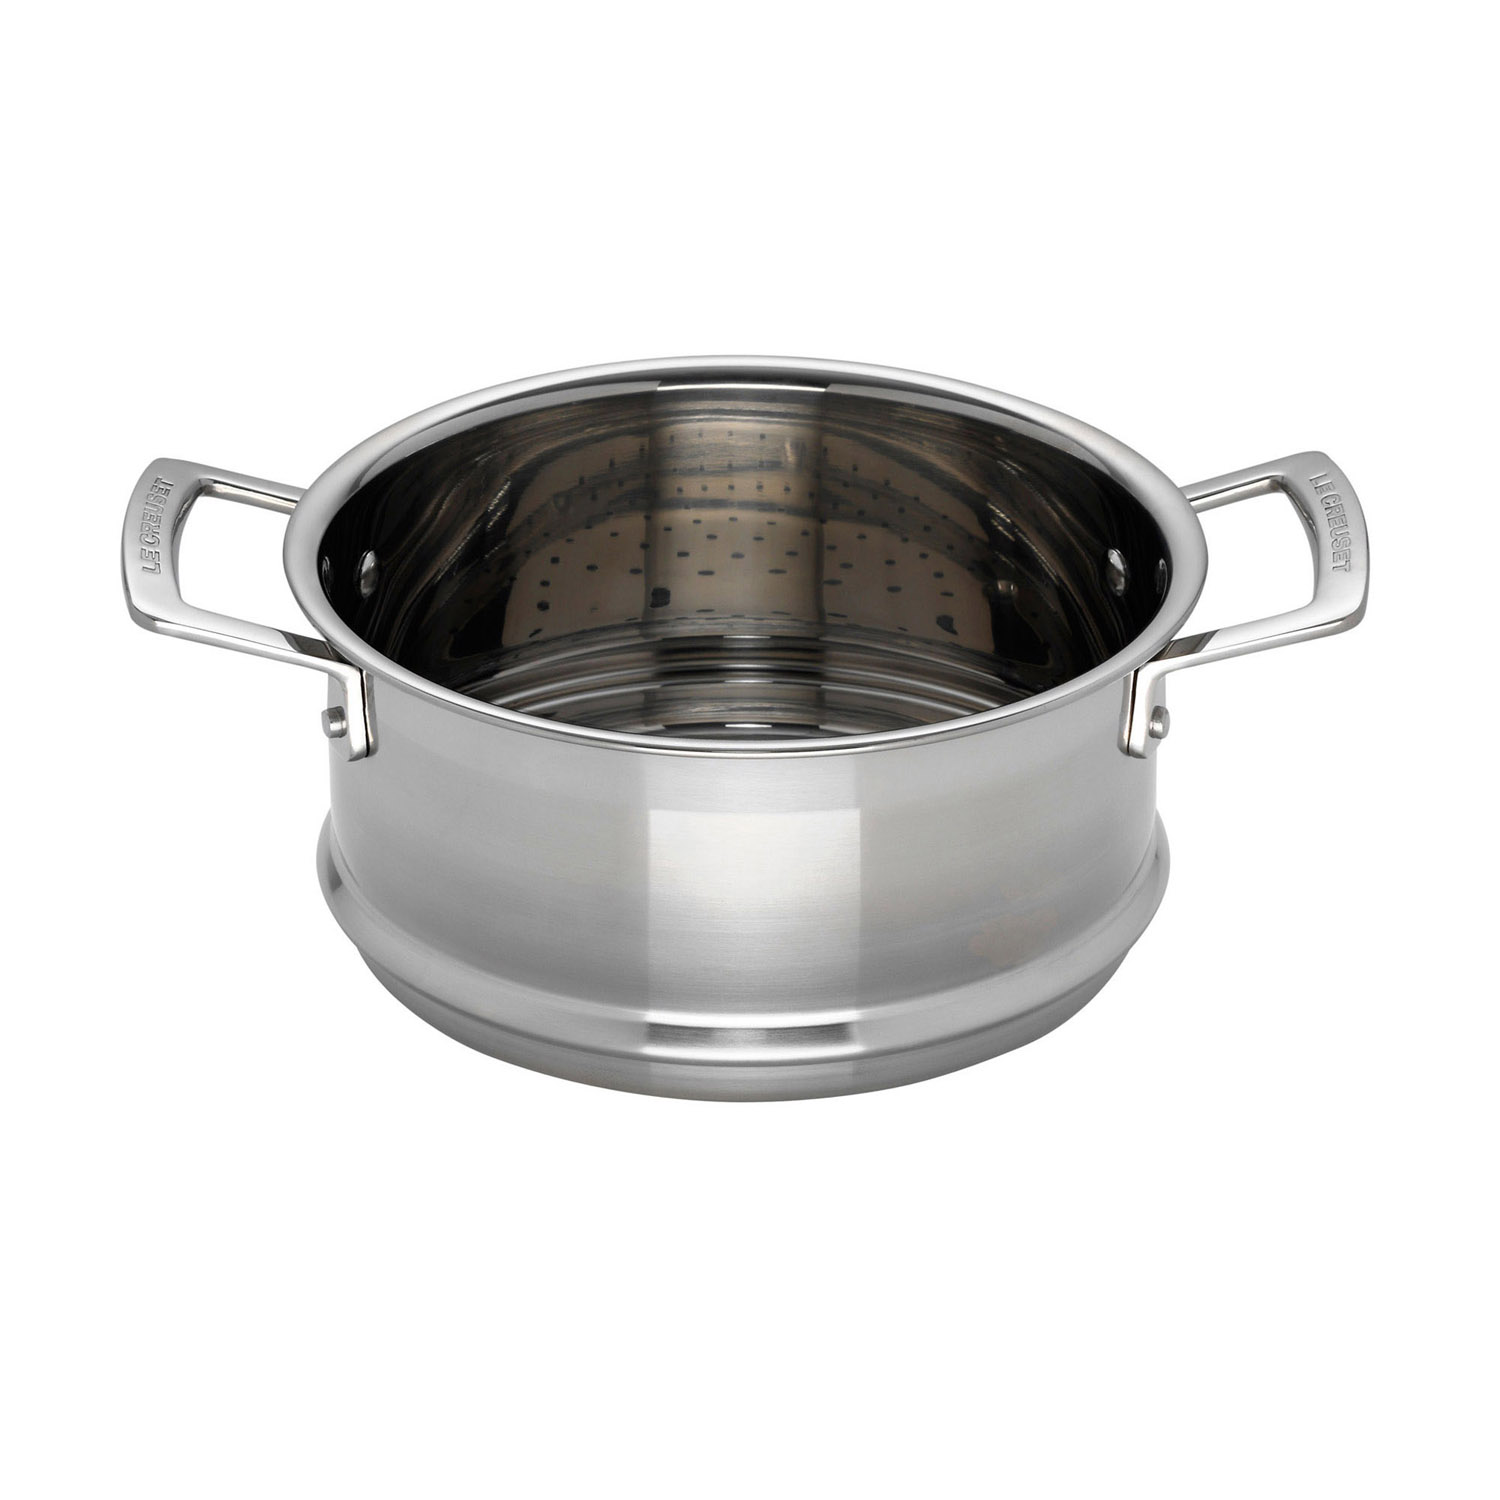 Image of Le Creuset 3-Ply Stainless Steel Steamer, 20cm